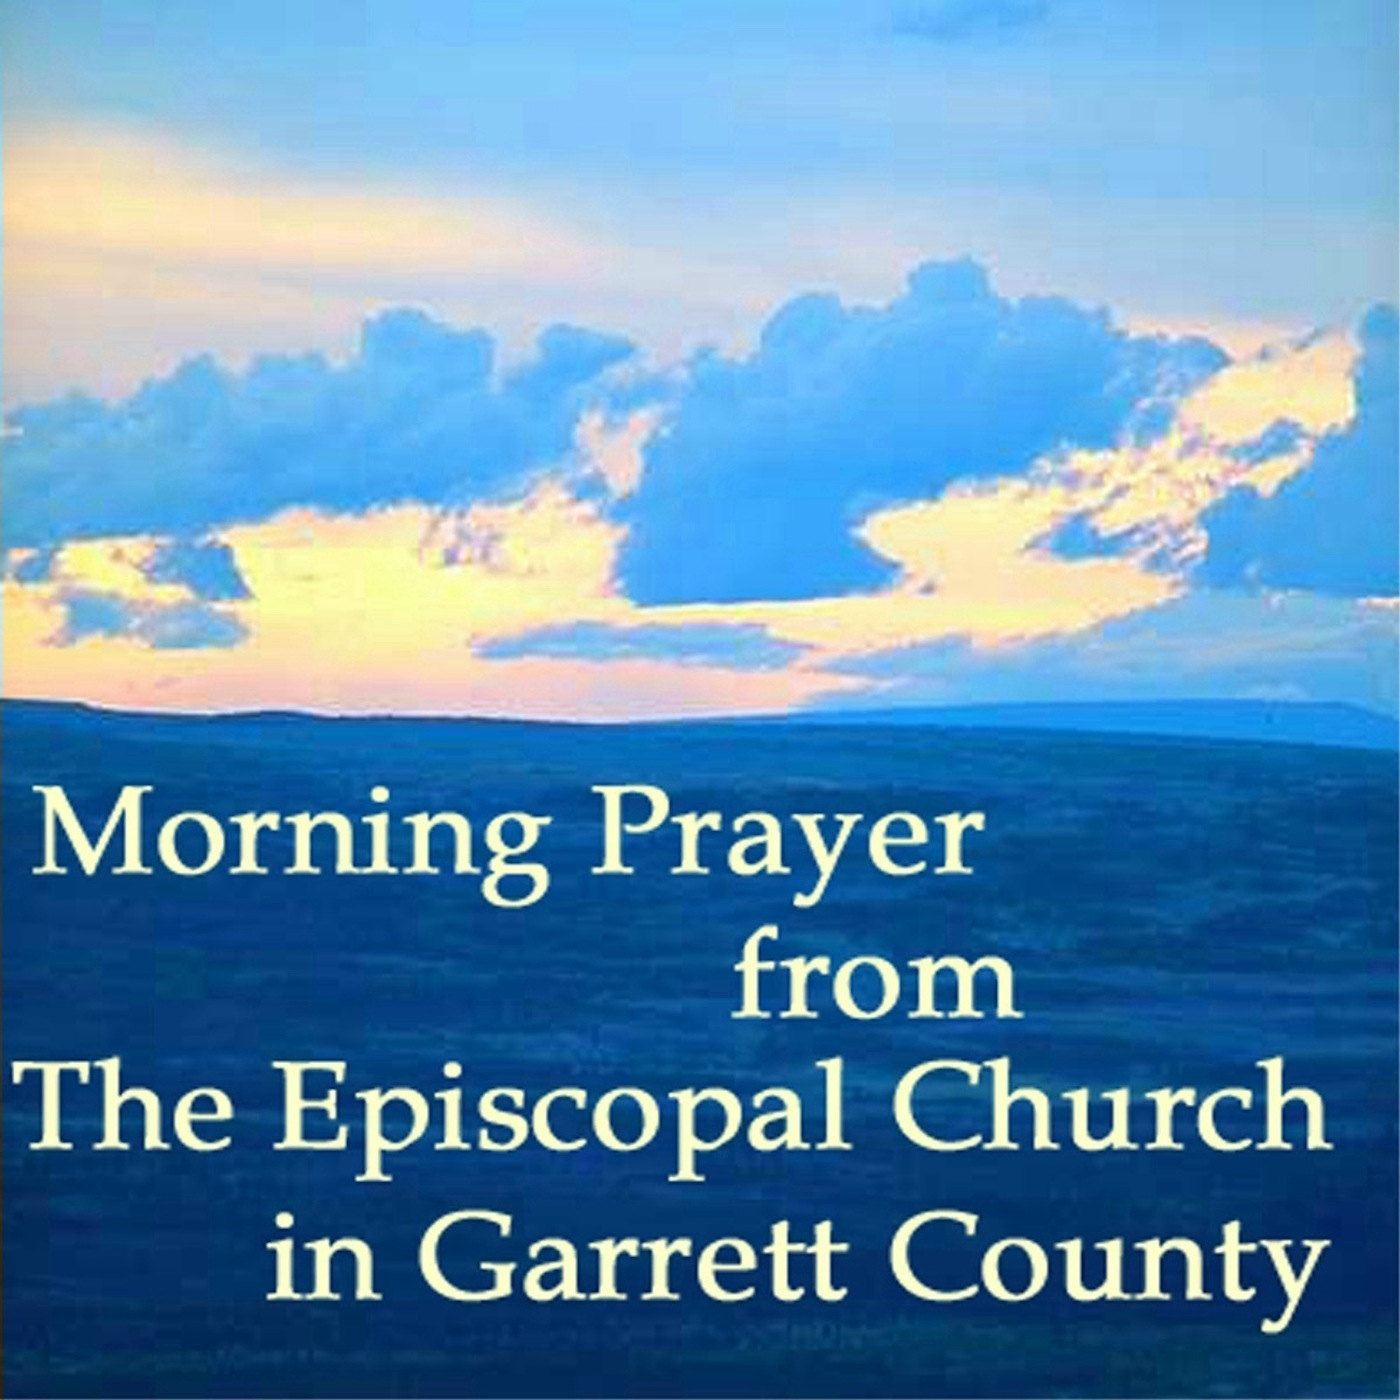 The Episcopal Church in Garrett County